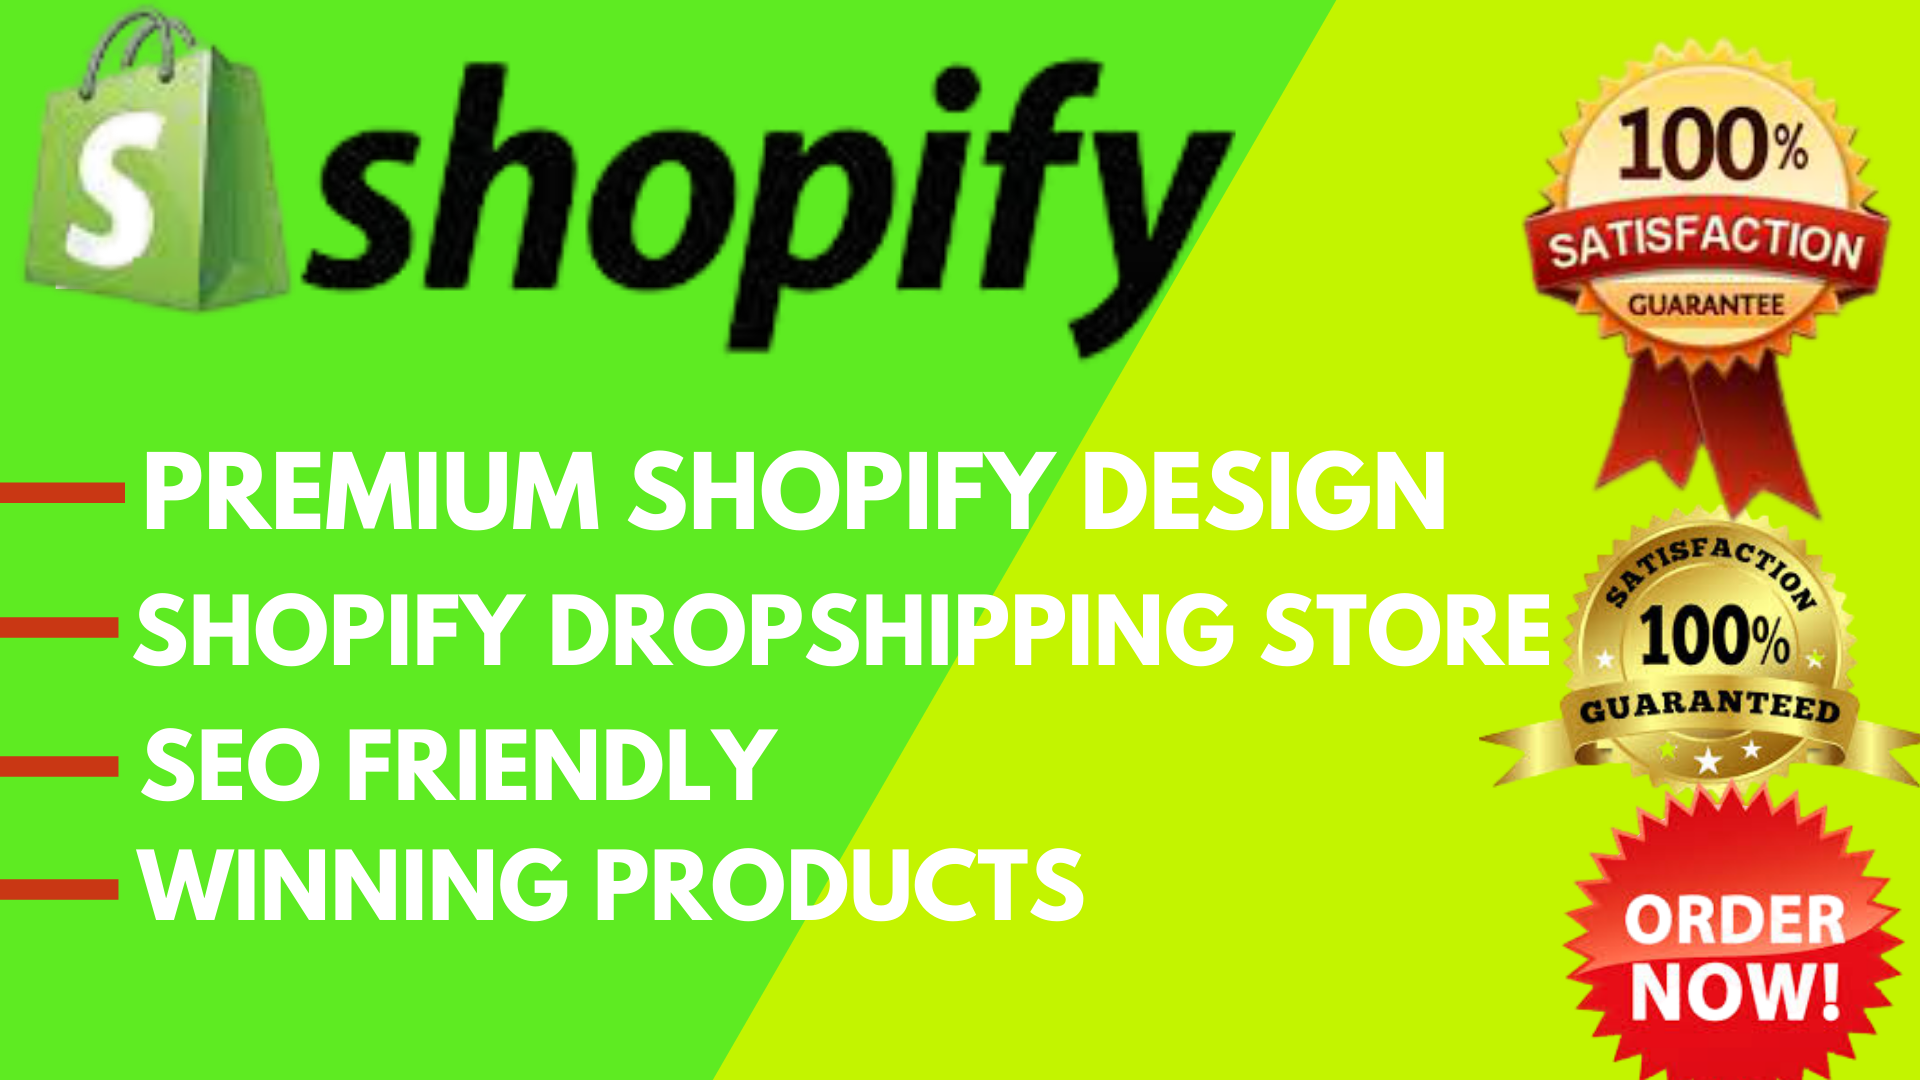 I will design build set up profitable shopify dropshipping website store design, FiverrBox